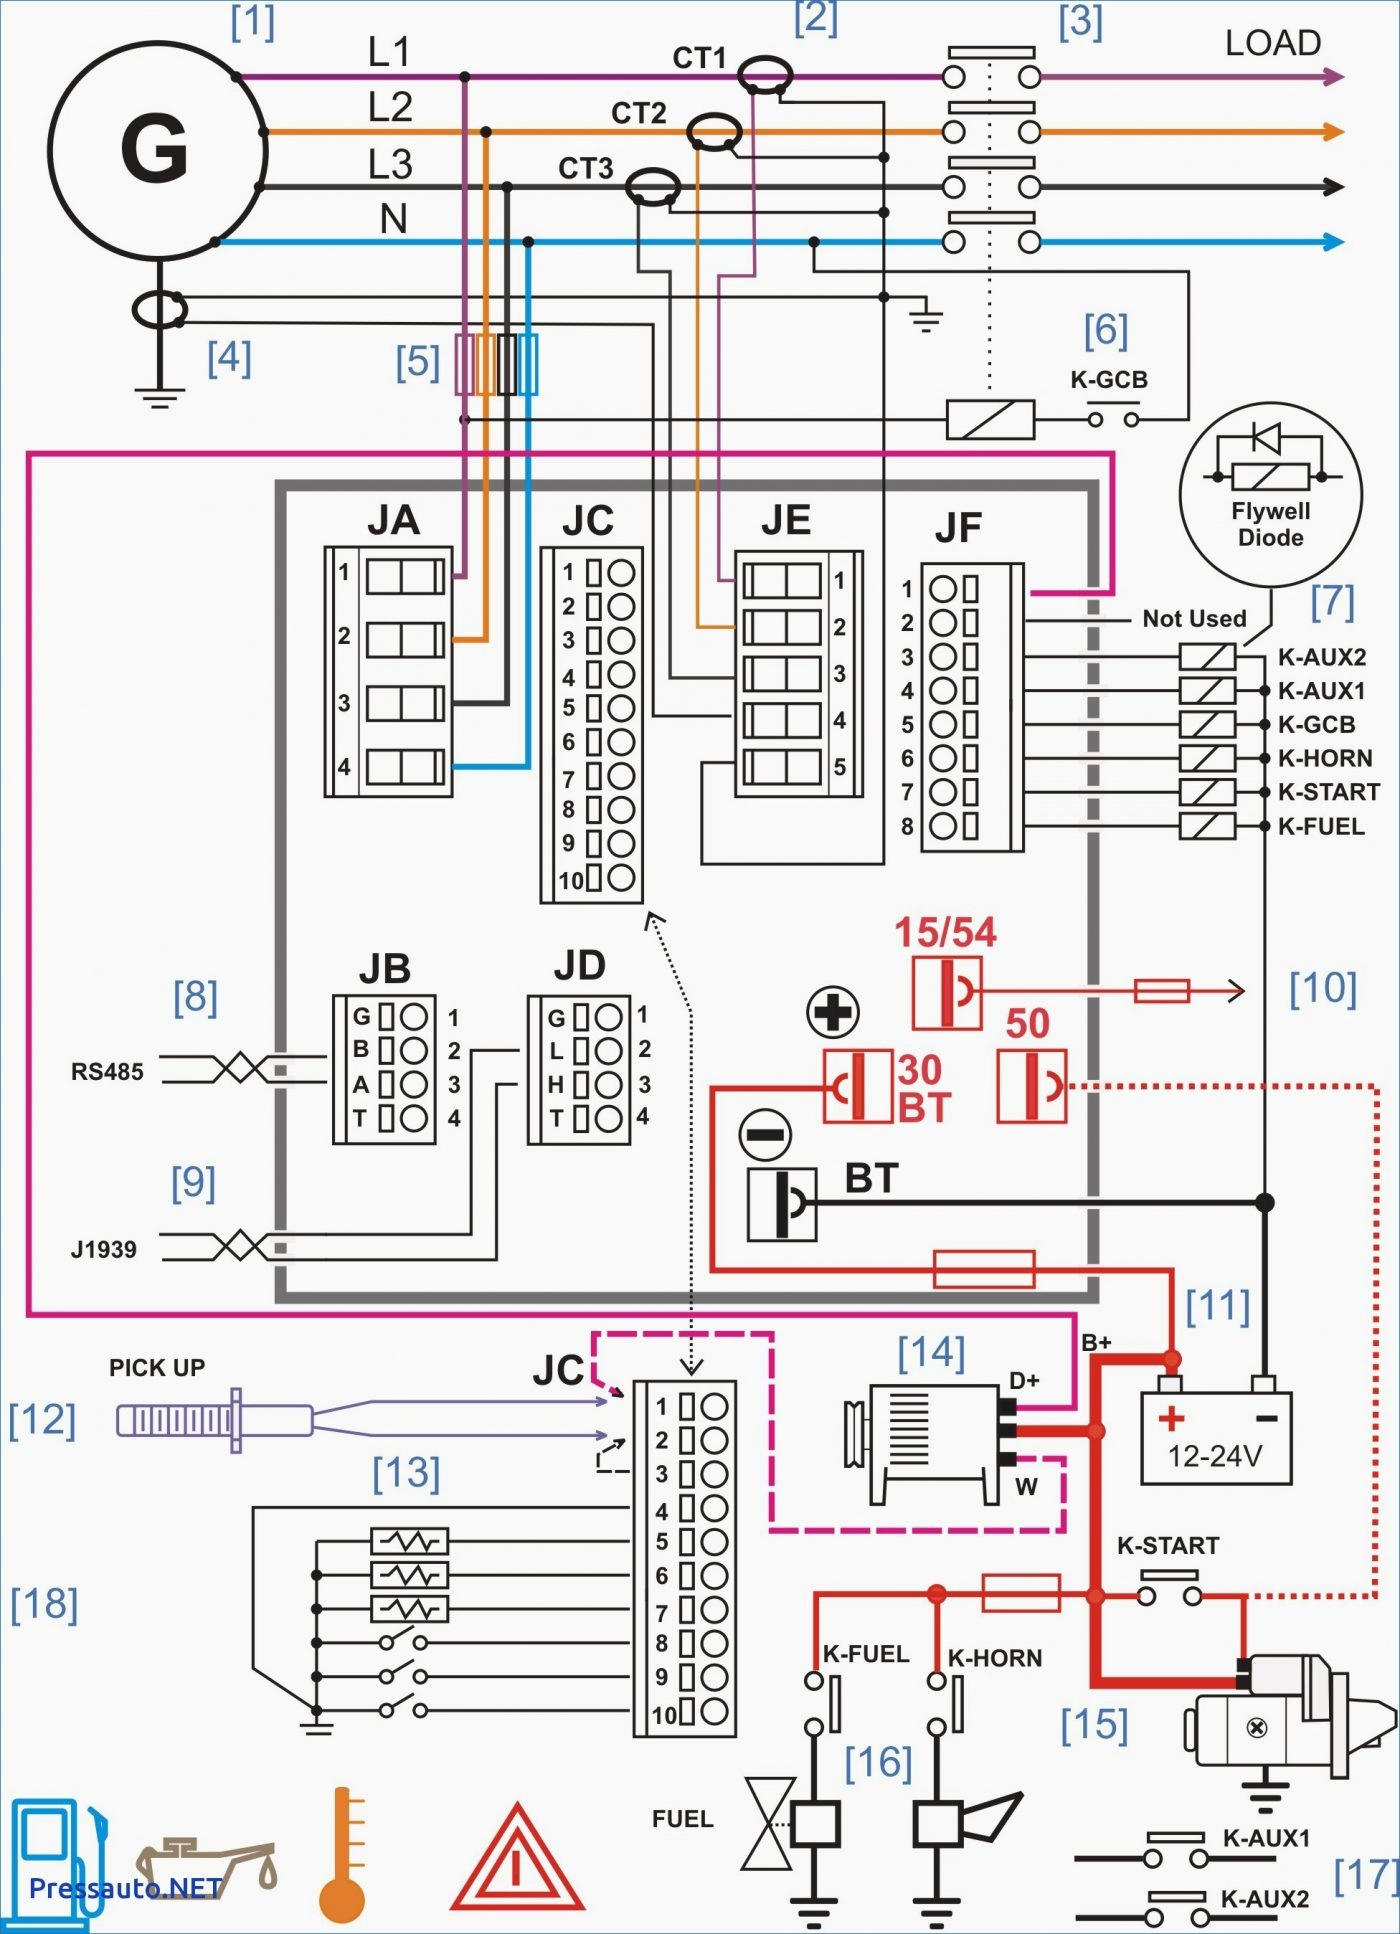 thermospa wiring diagram Download-Thermospa Wiring Diagram Luxury Sta Rite Pump Wiring Diagram Pool Ht T Submersible High Wires 13-f